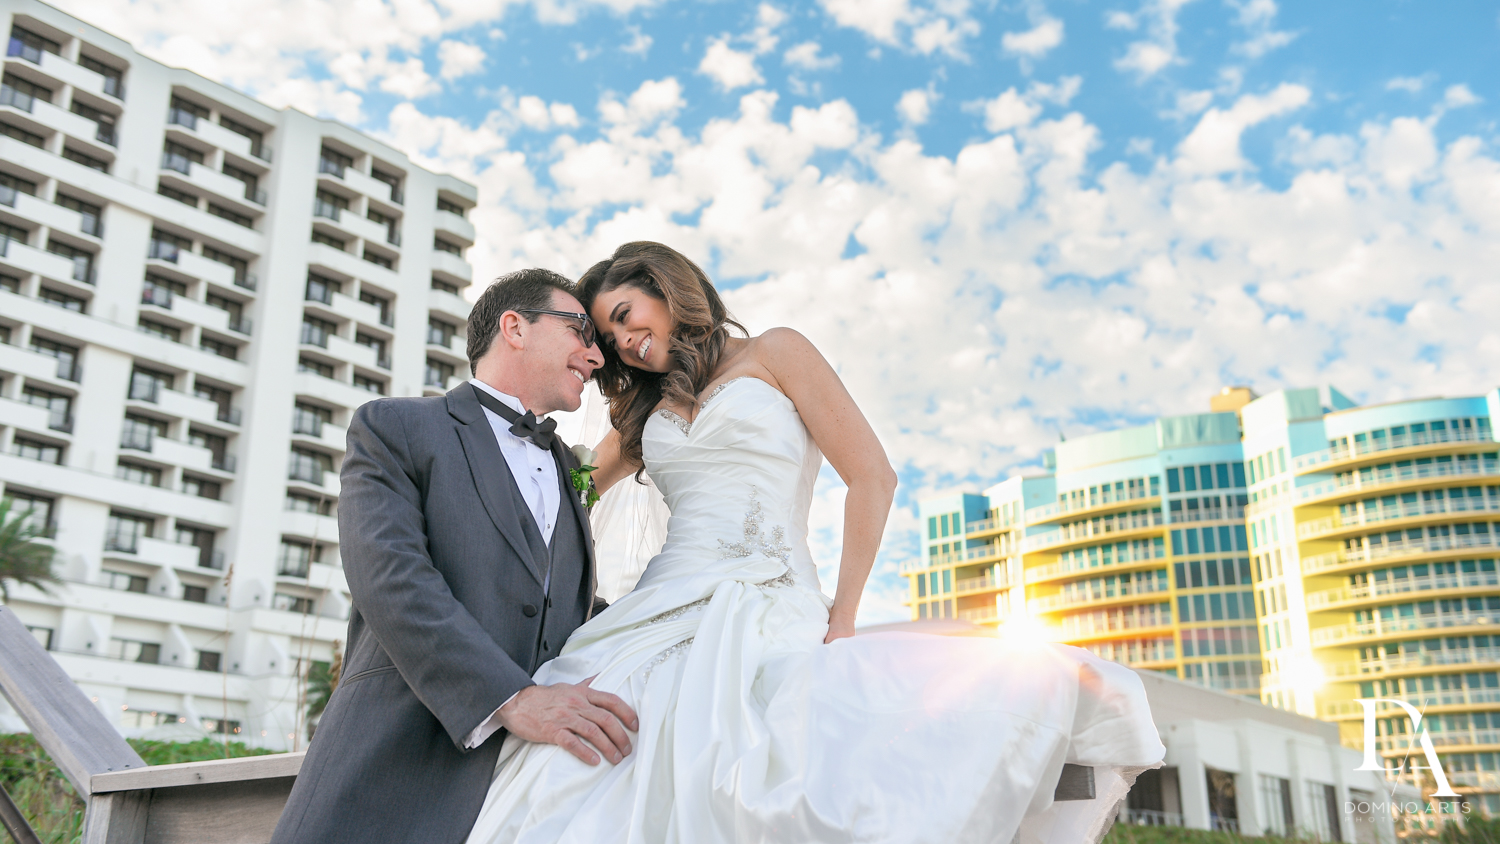 Best Wedding Photography in South Florida at Fort Lauderdale Marriott Harbor Beach Resort & Spa by Domino Arts Photography